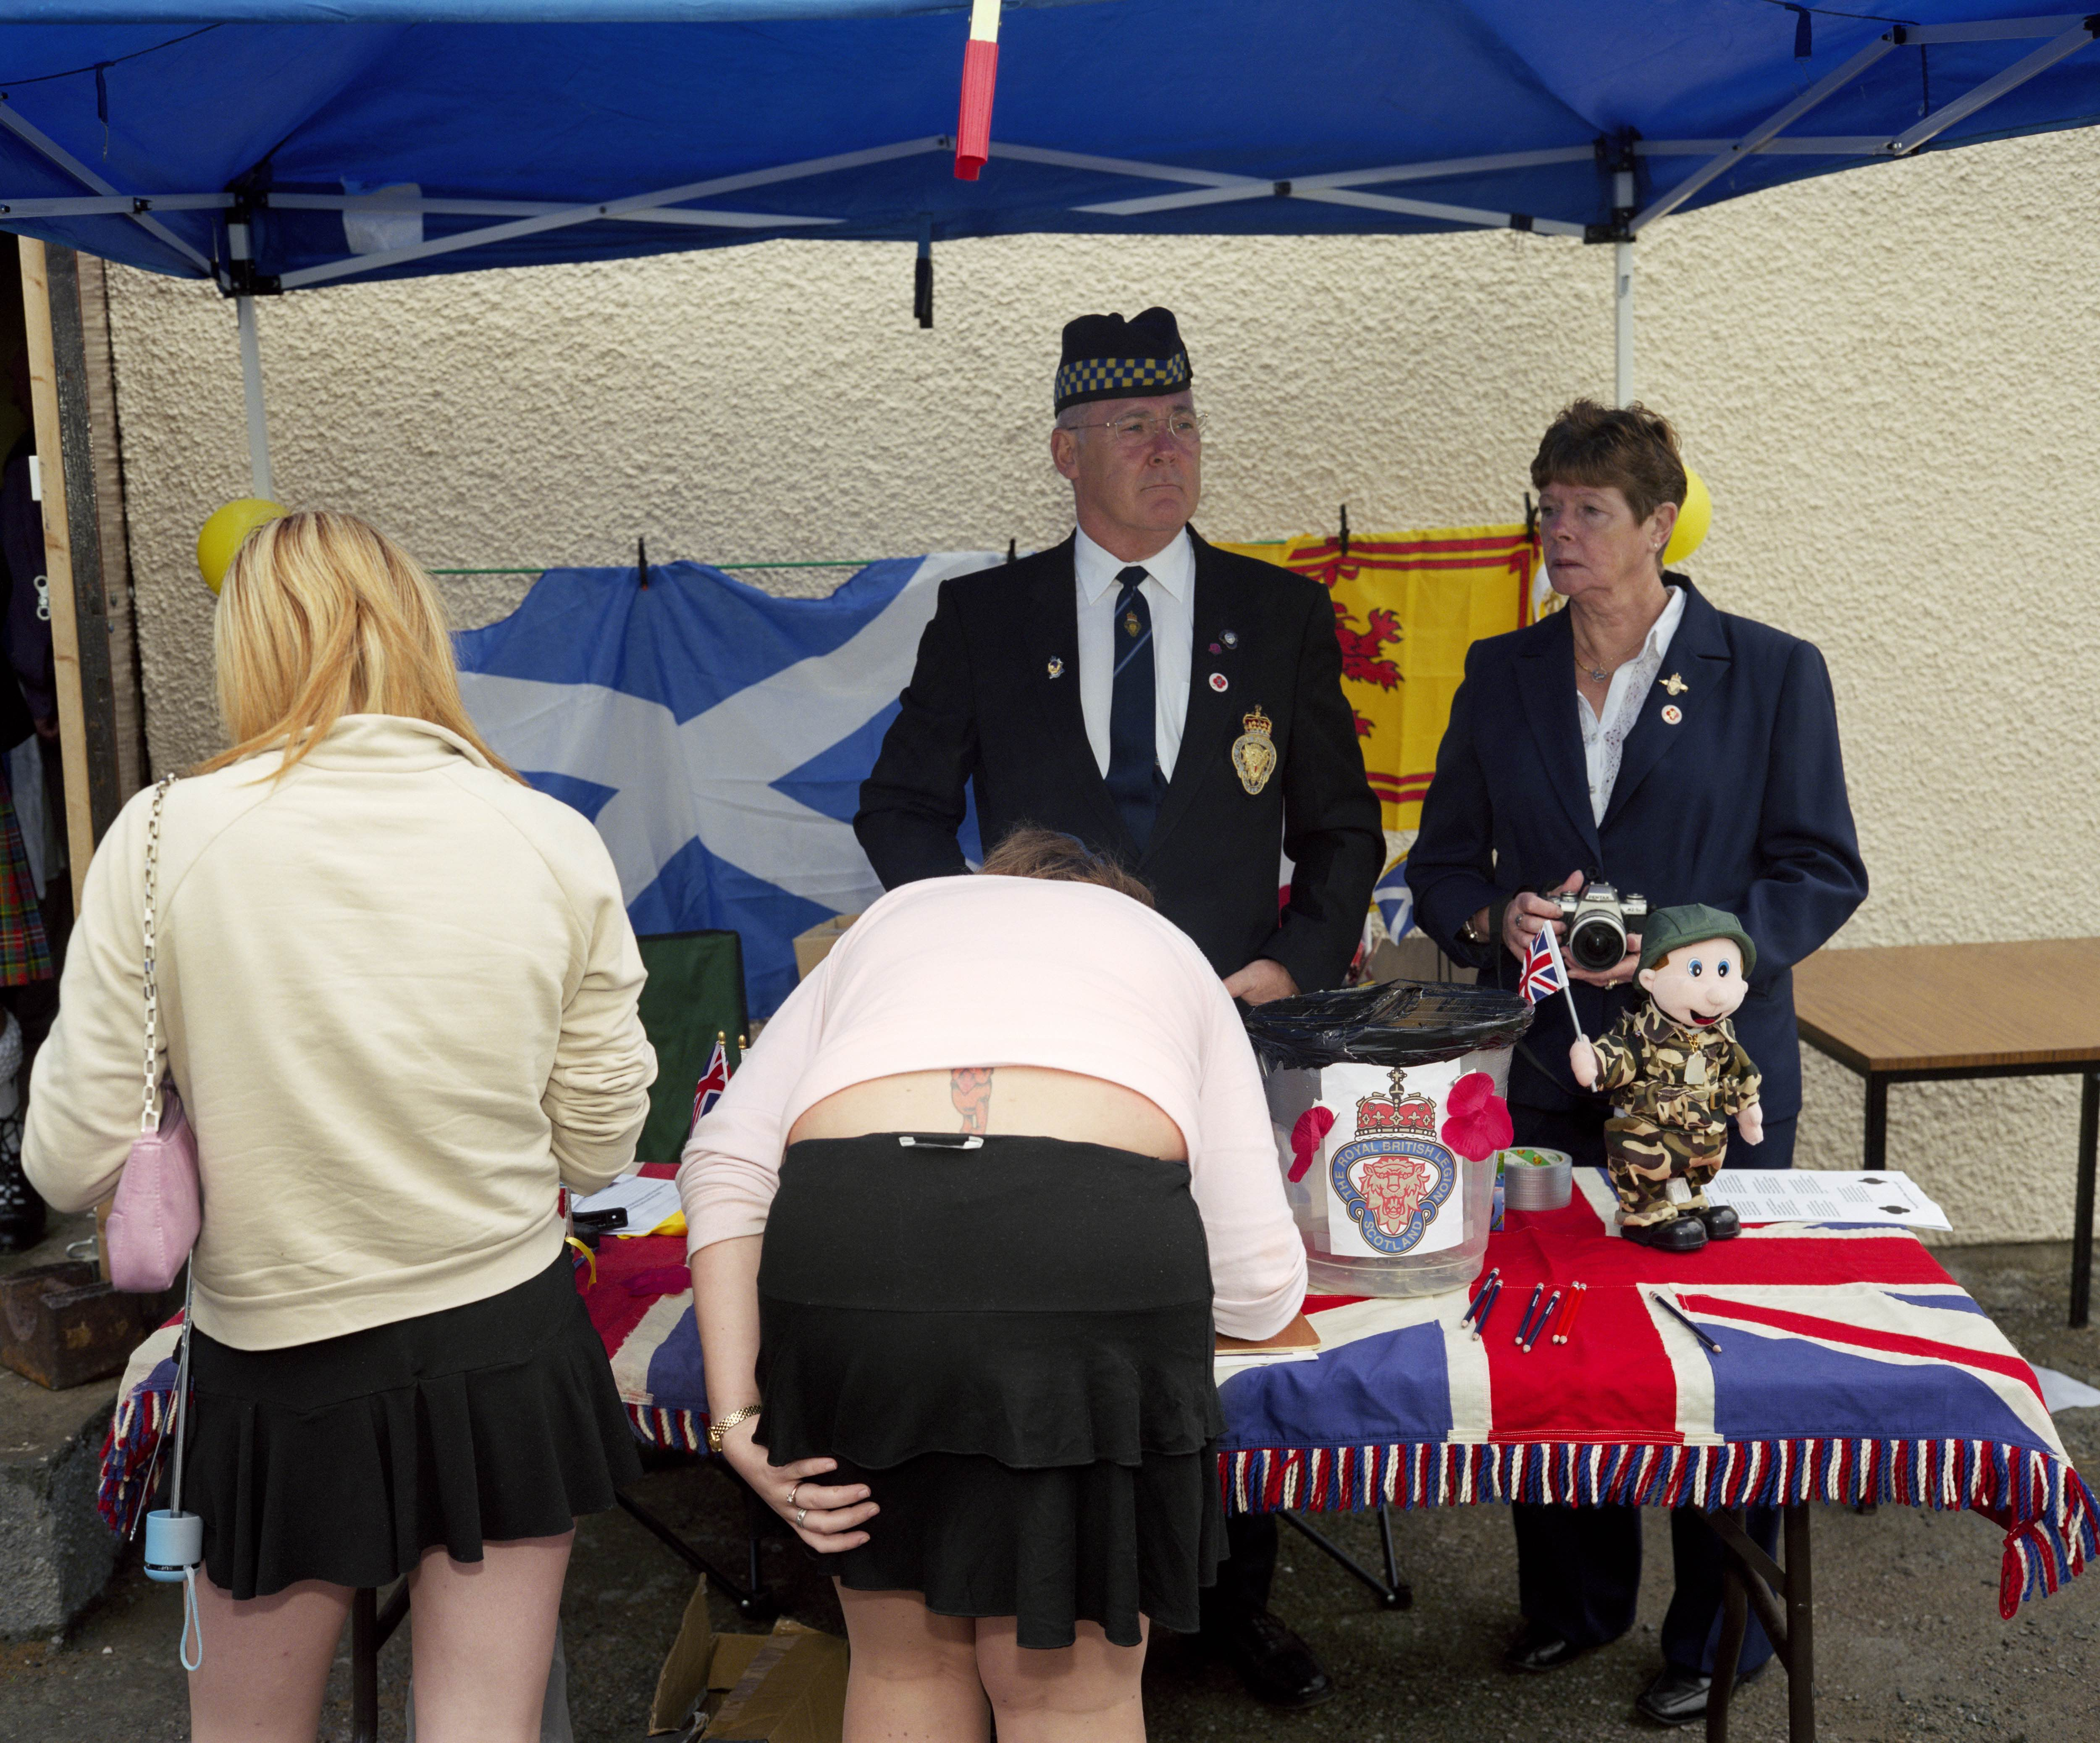 GB. Scotland. Dunoon. Cowal Games. From A8. 2004. © Martin Parr/Magnum Photos